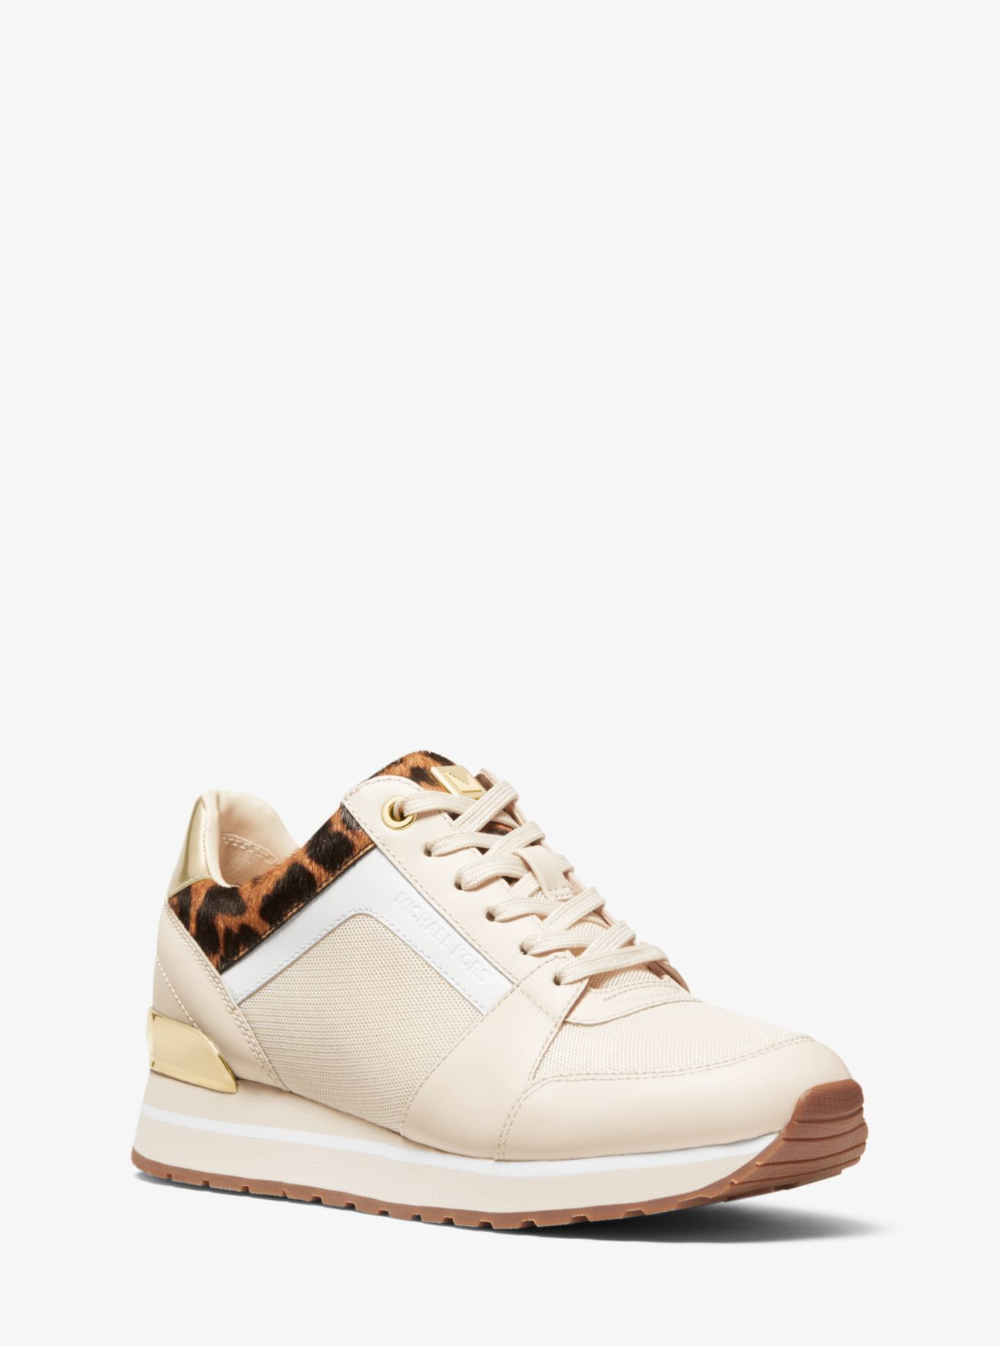 Billie Mixed Media Trainer Michael Kors Trainers Michael Kors Sports Luxe